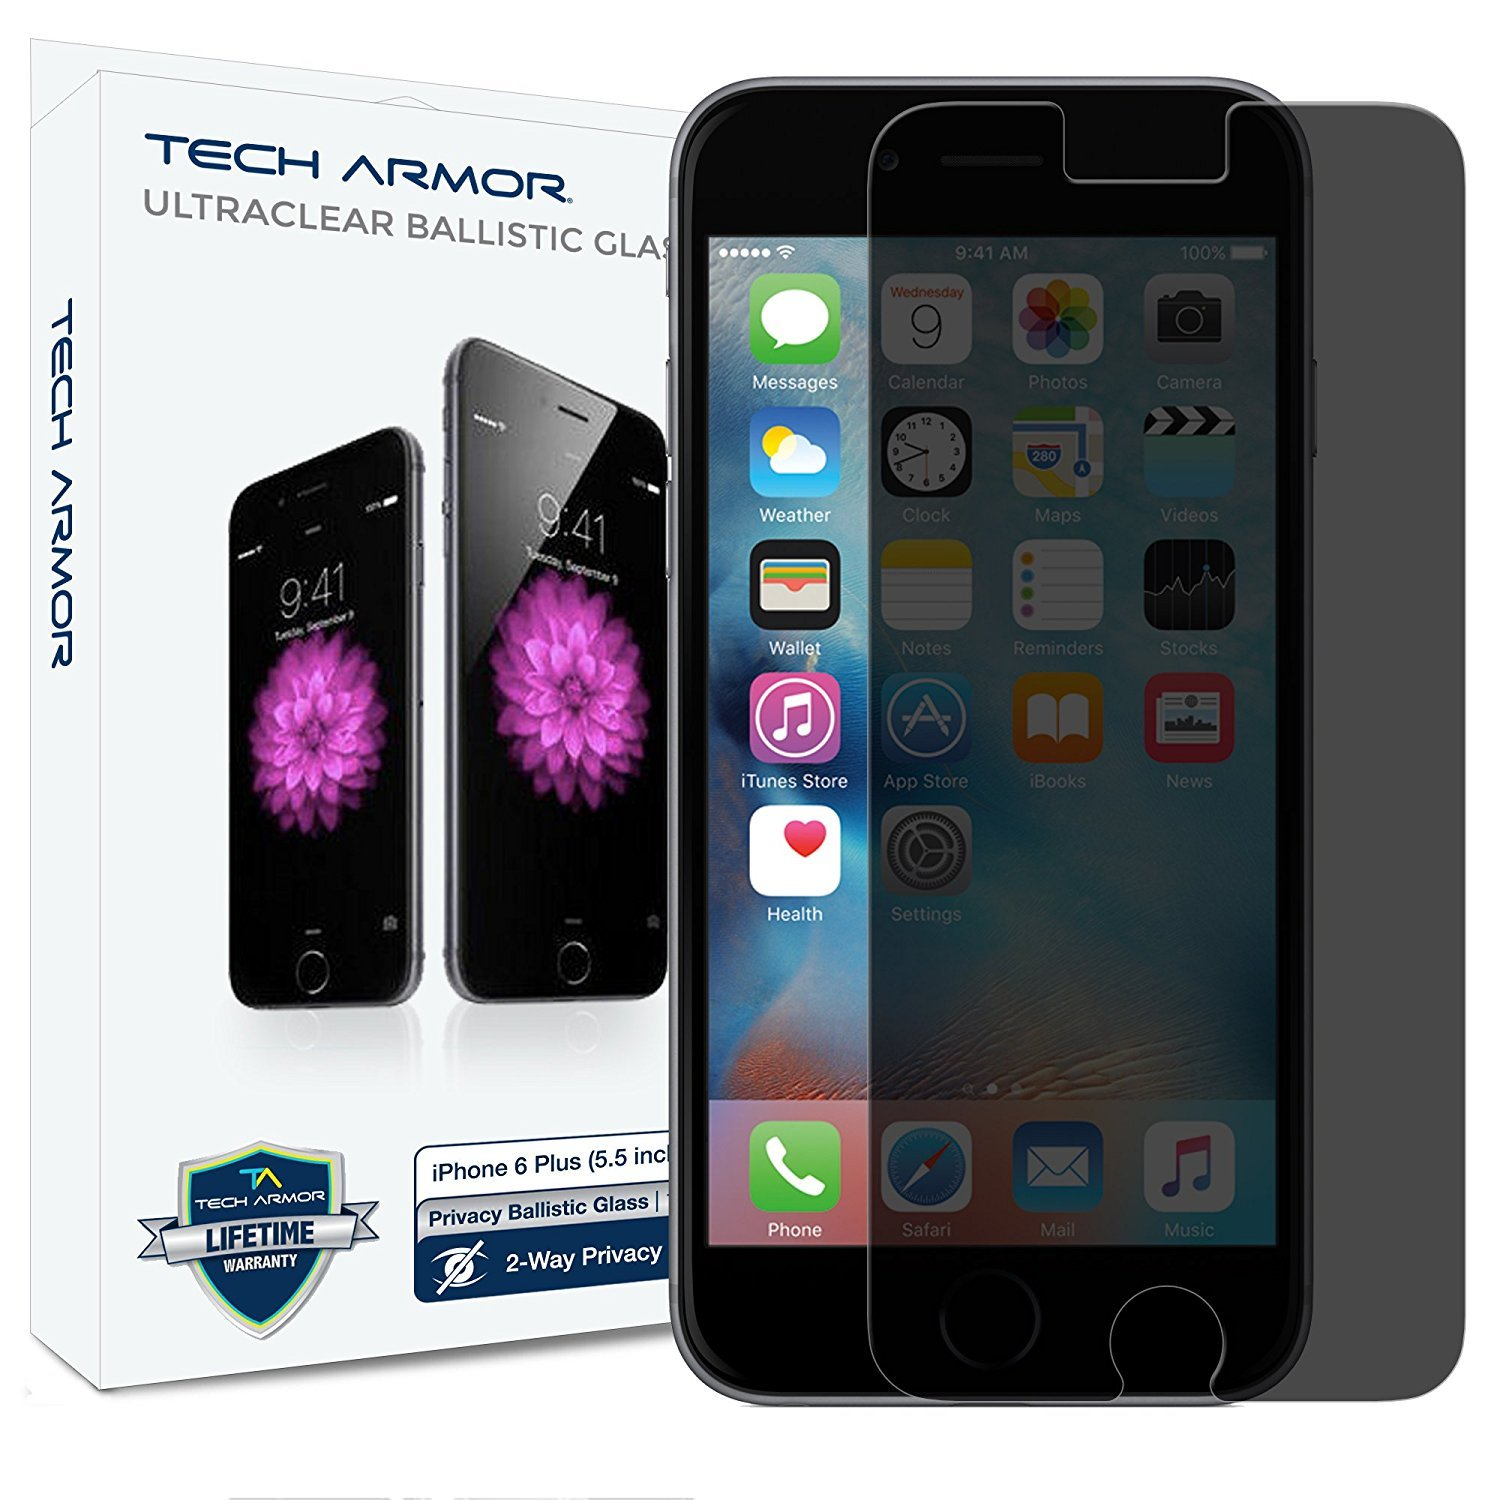 Tech Armor Privacy Ballistic Glass Screen Protector for Apple iPhone 6 Plus / iPhone 6s Plus (5.5-inch) [1-Pack]